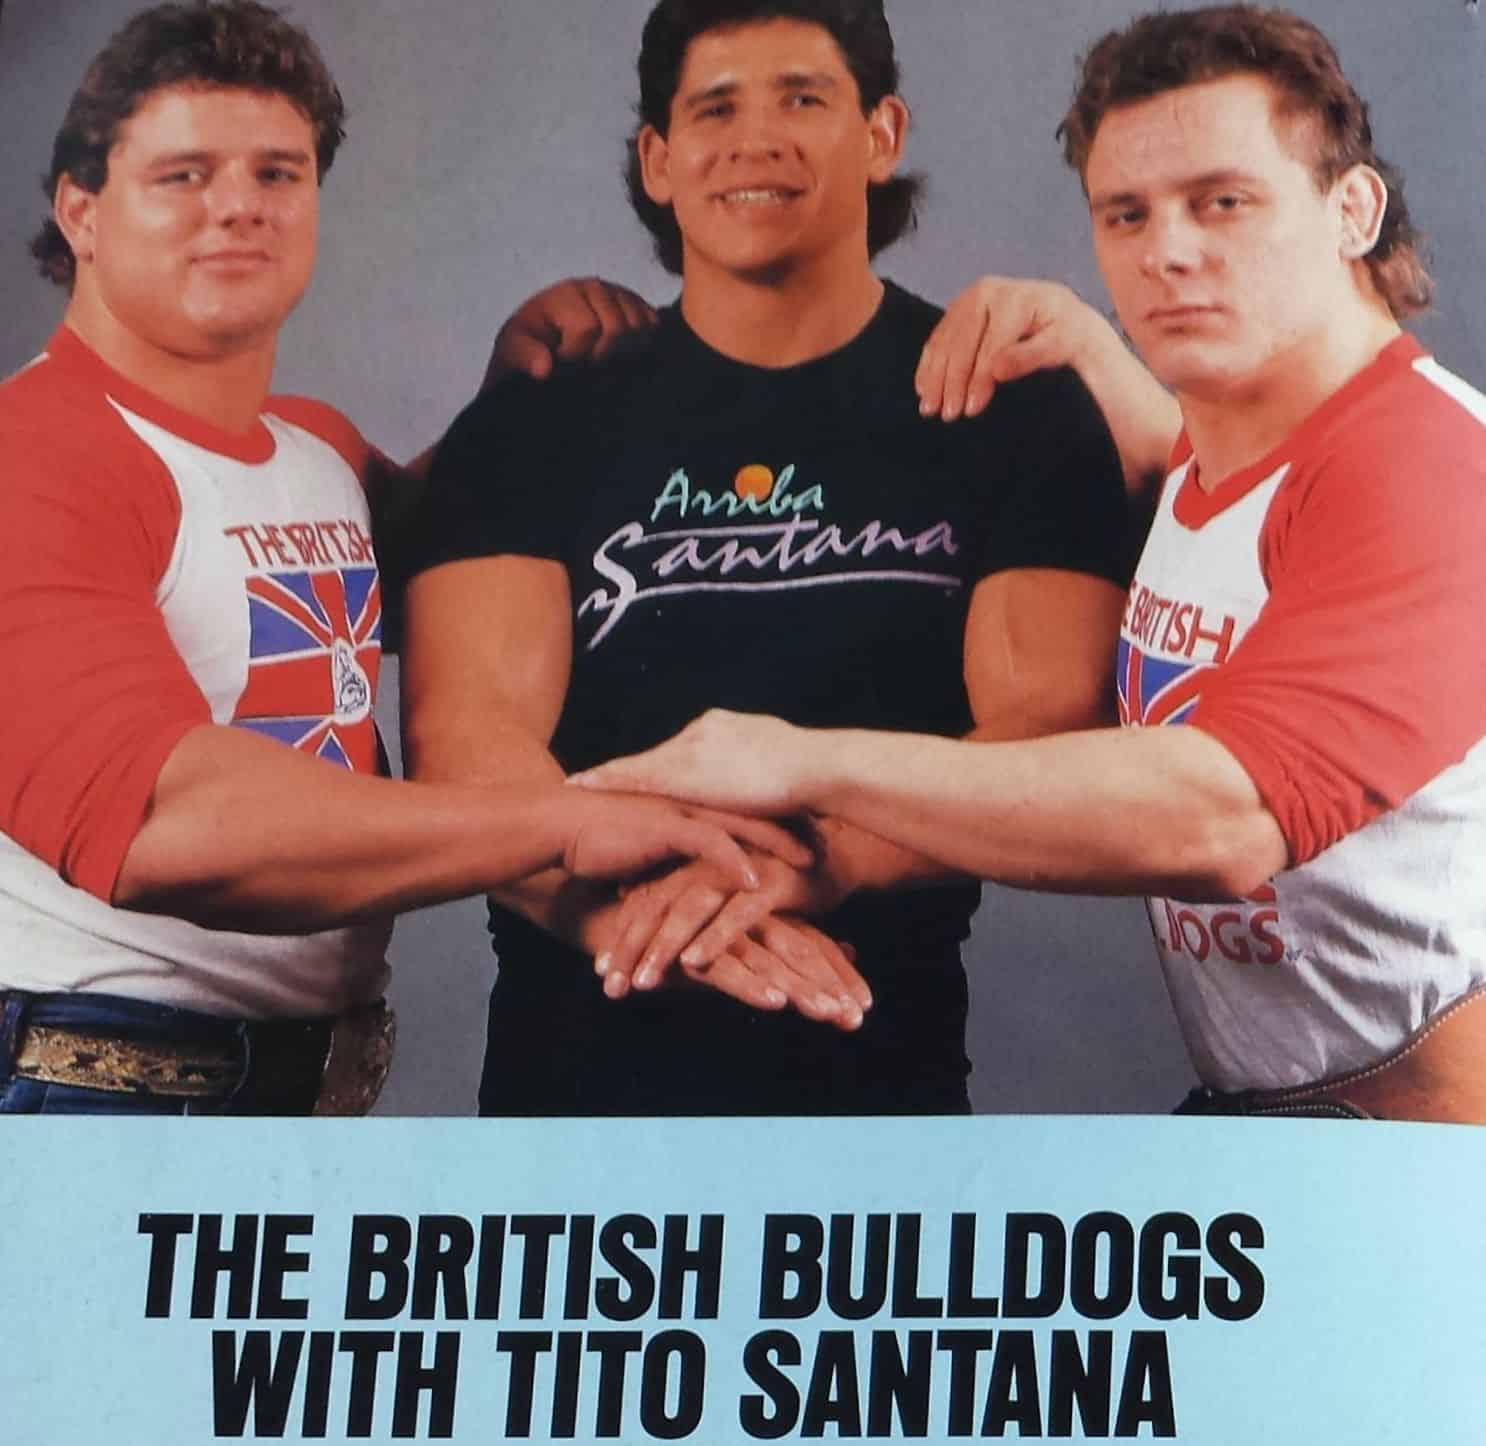 The British Bulldogs and Tito Santana with their hands stacked